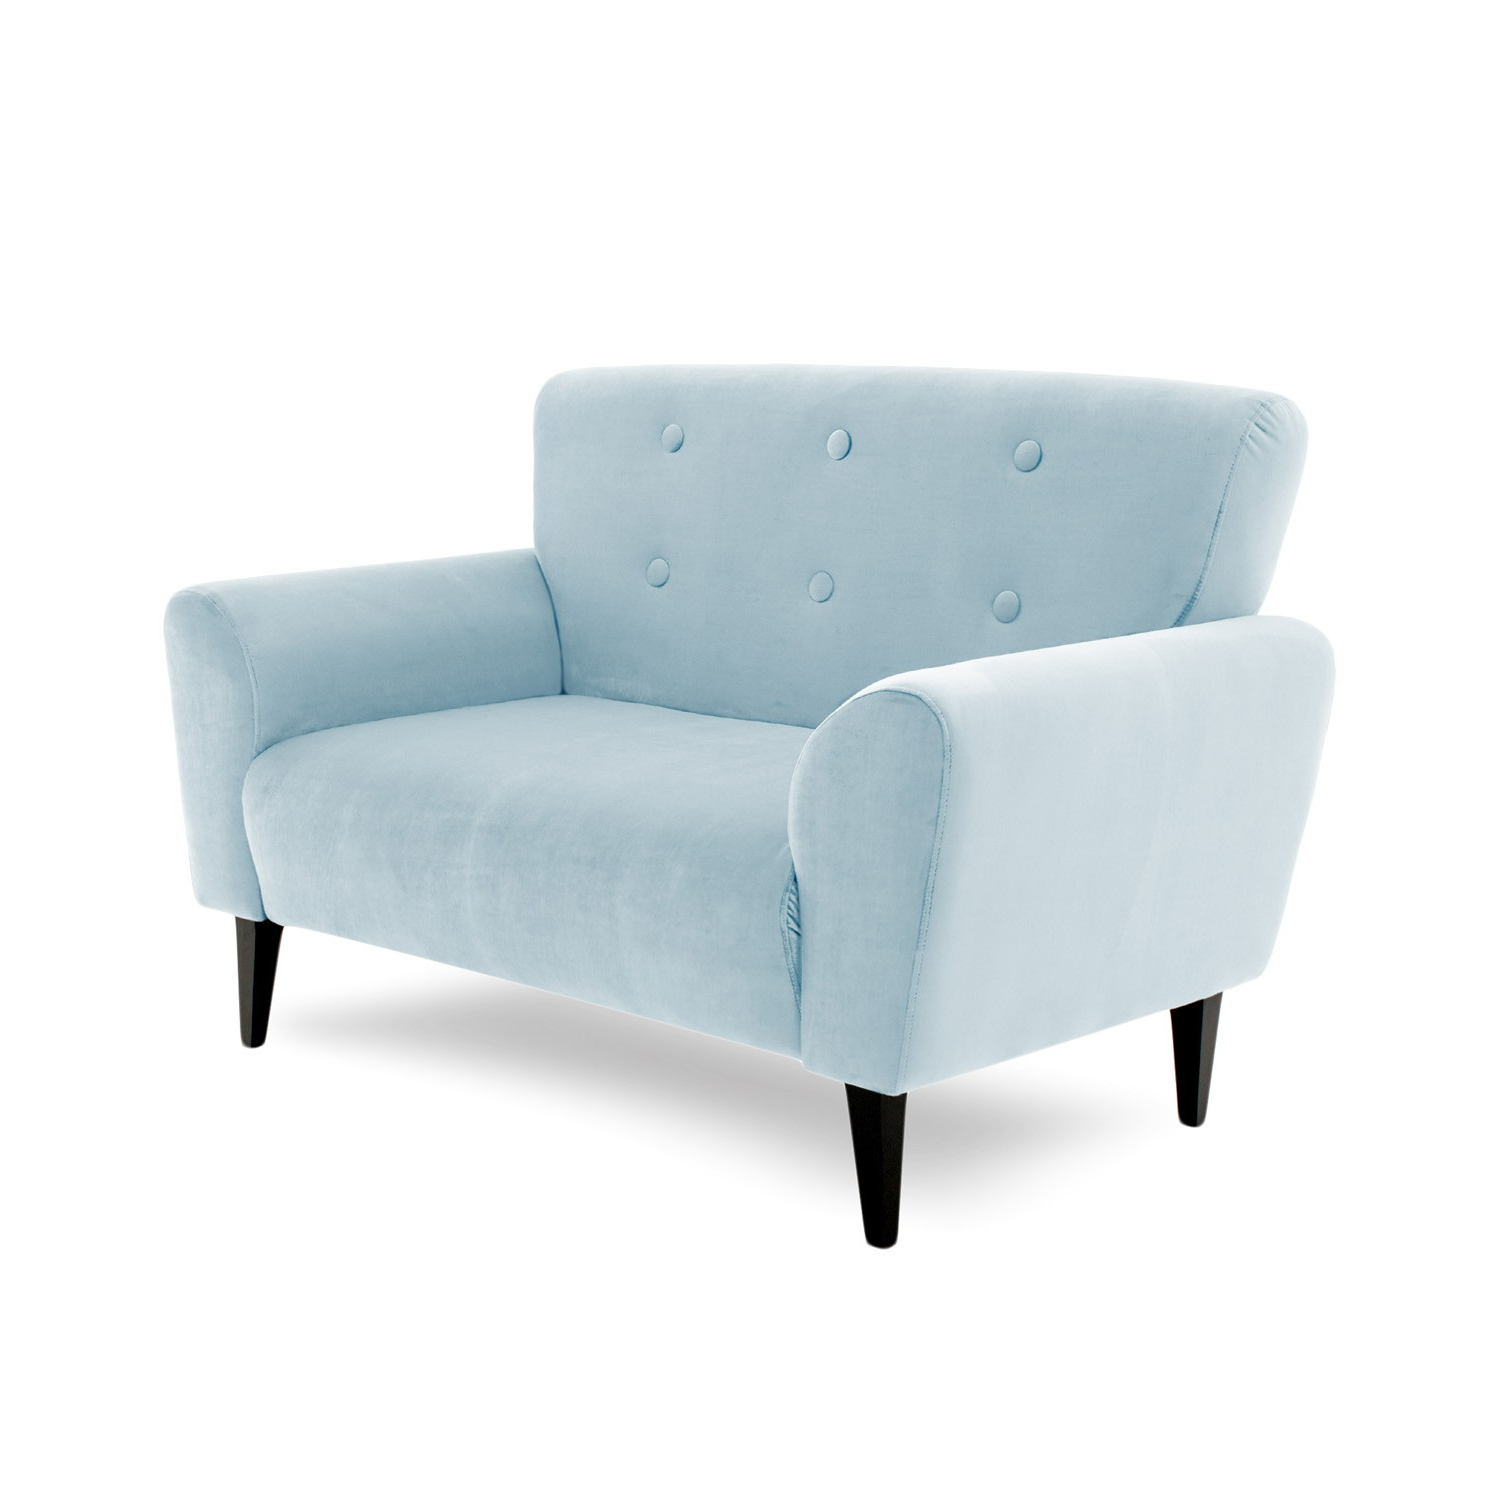 Kiara 2 Seater Pertaining To Most Recently Released Kiara Sofa Chairs (View 9 of 20)